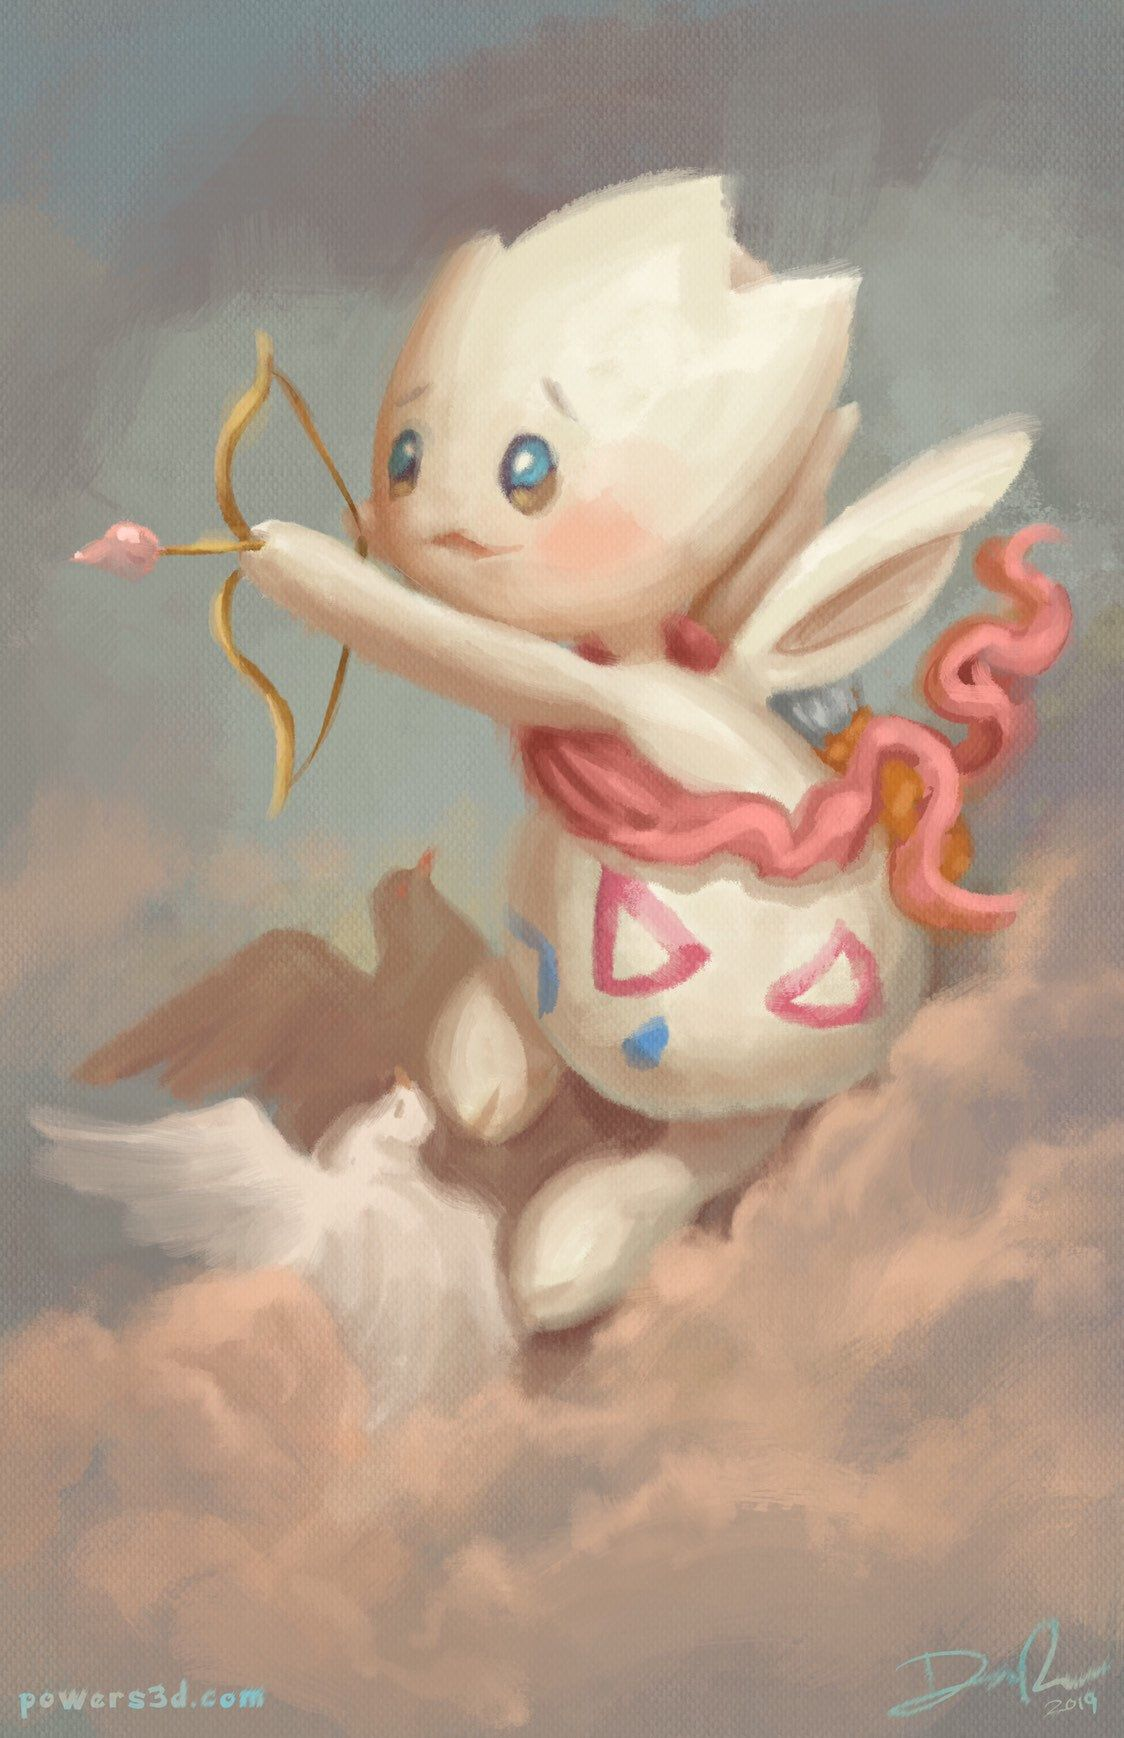 Cupid Art Print | Pokemon | Art, Art prints, Pokemon